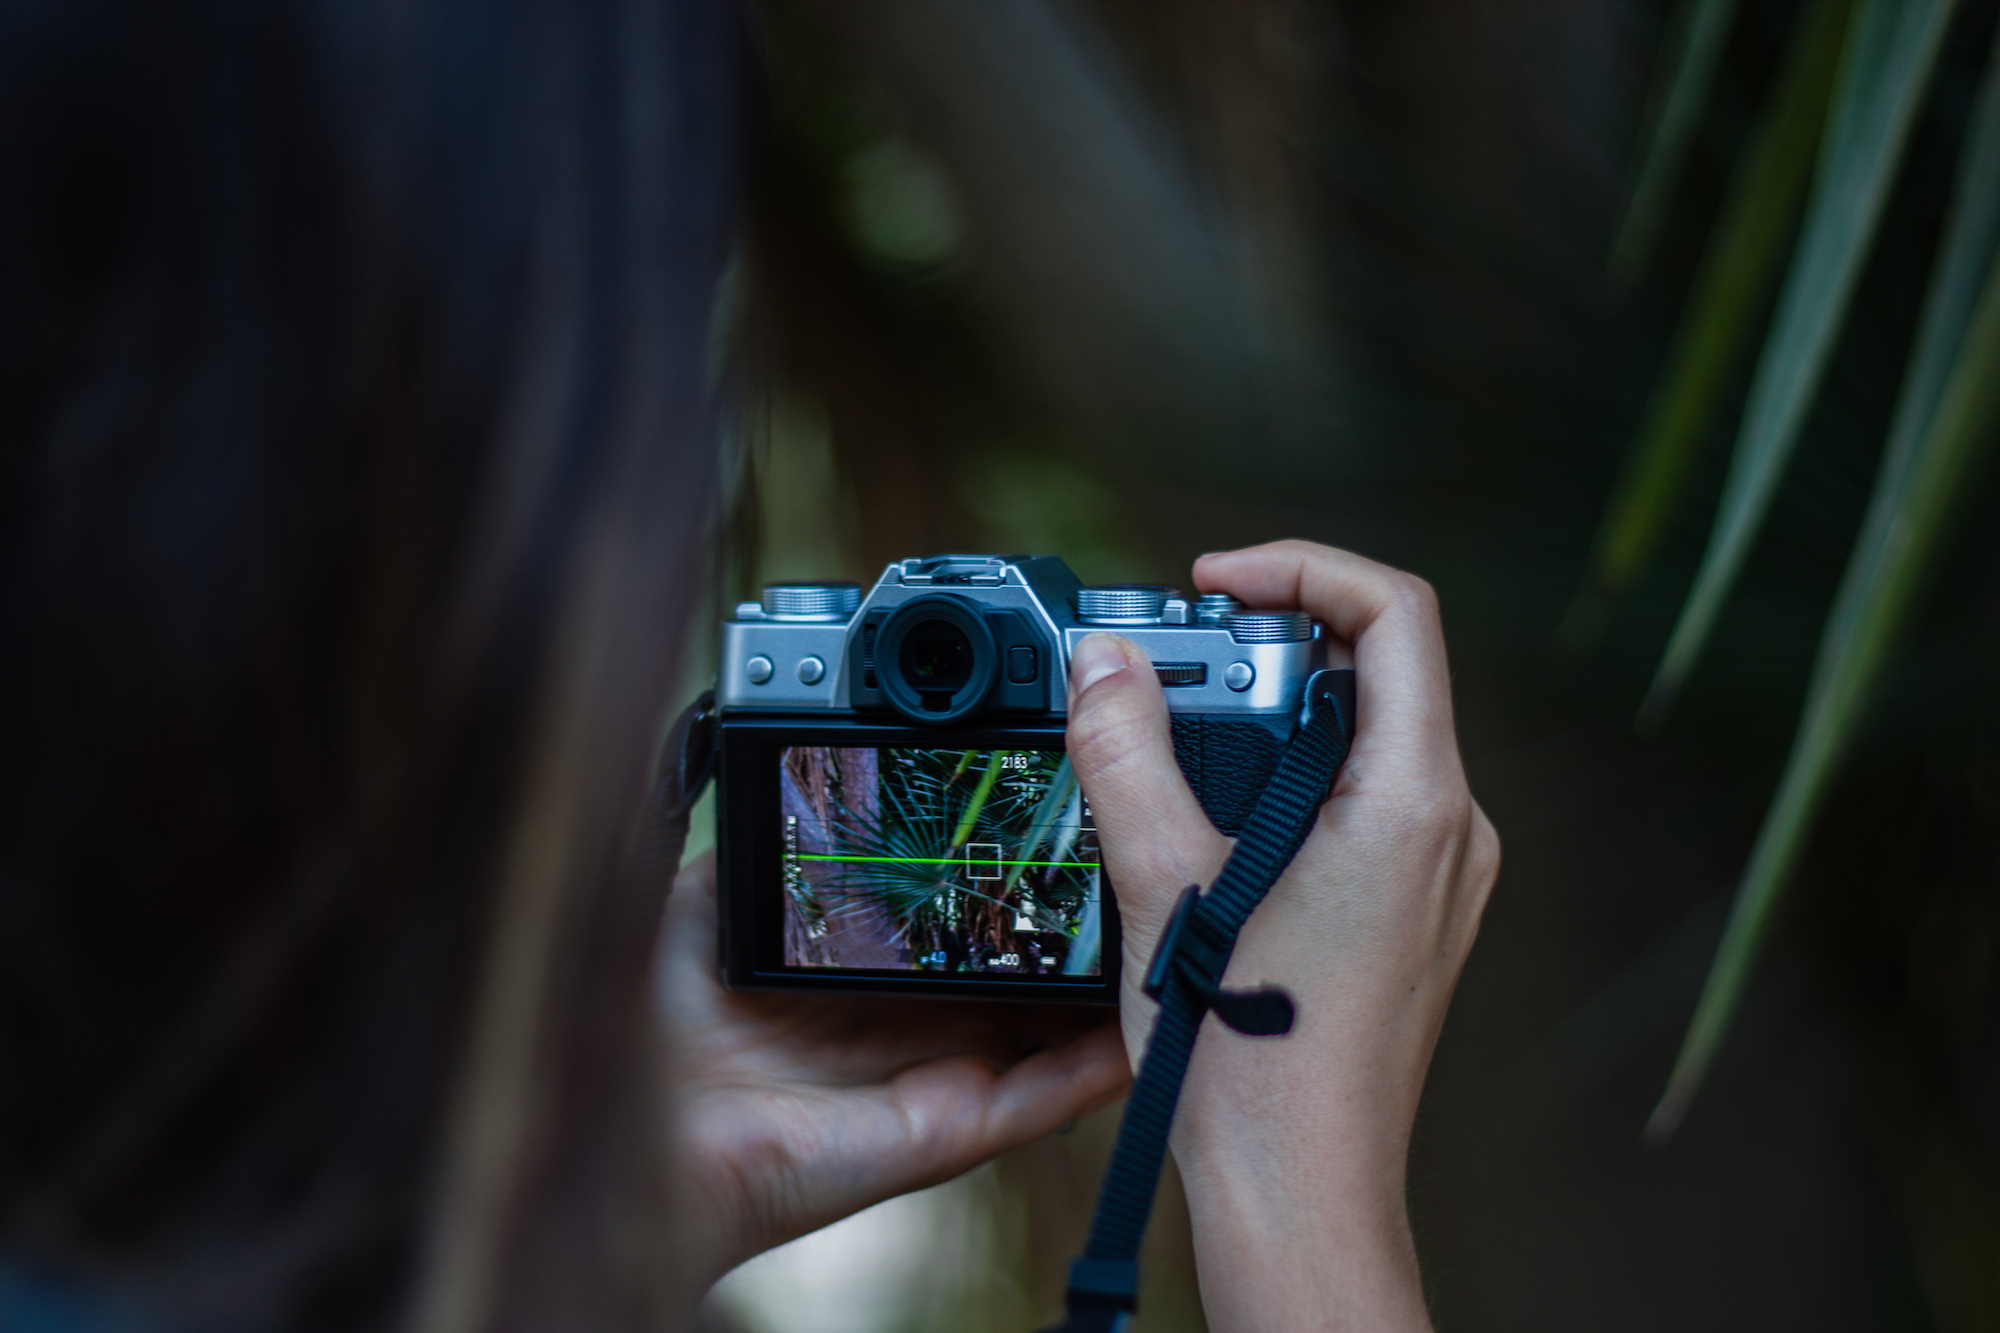 Taking a photo with a mirrorless camera